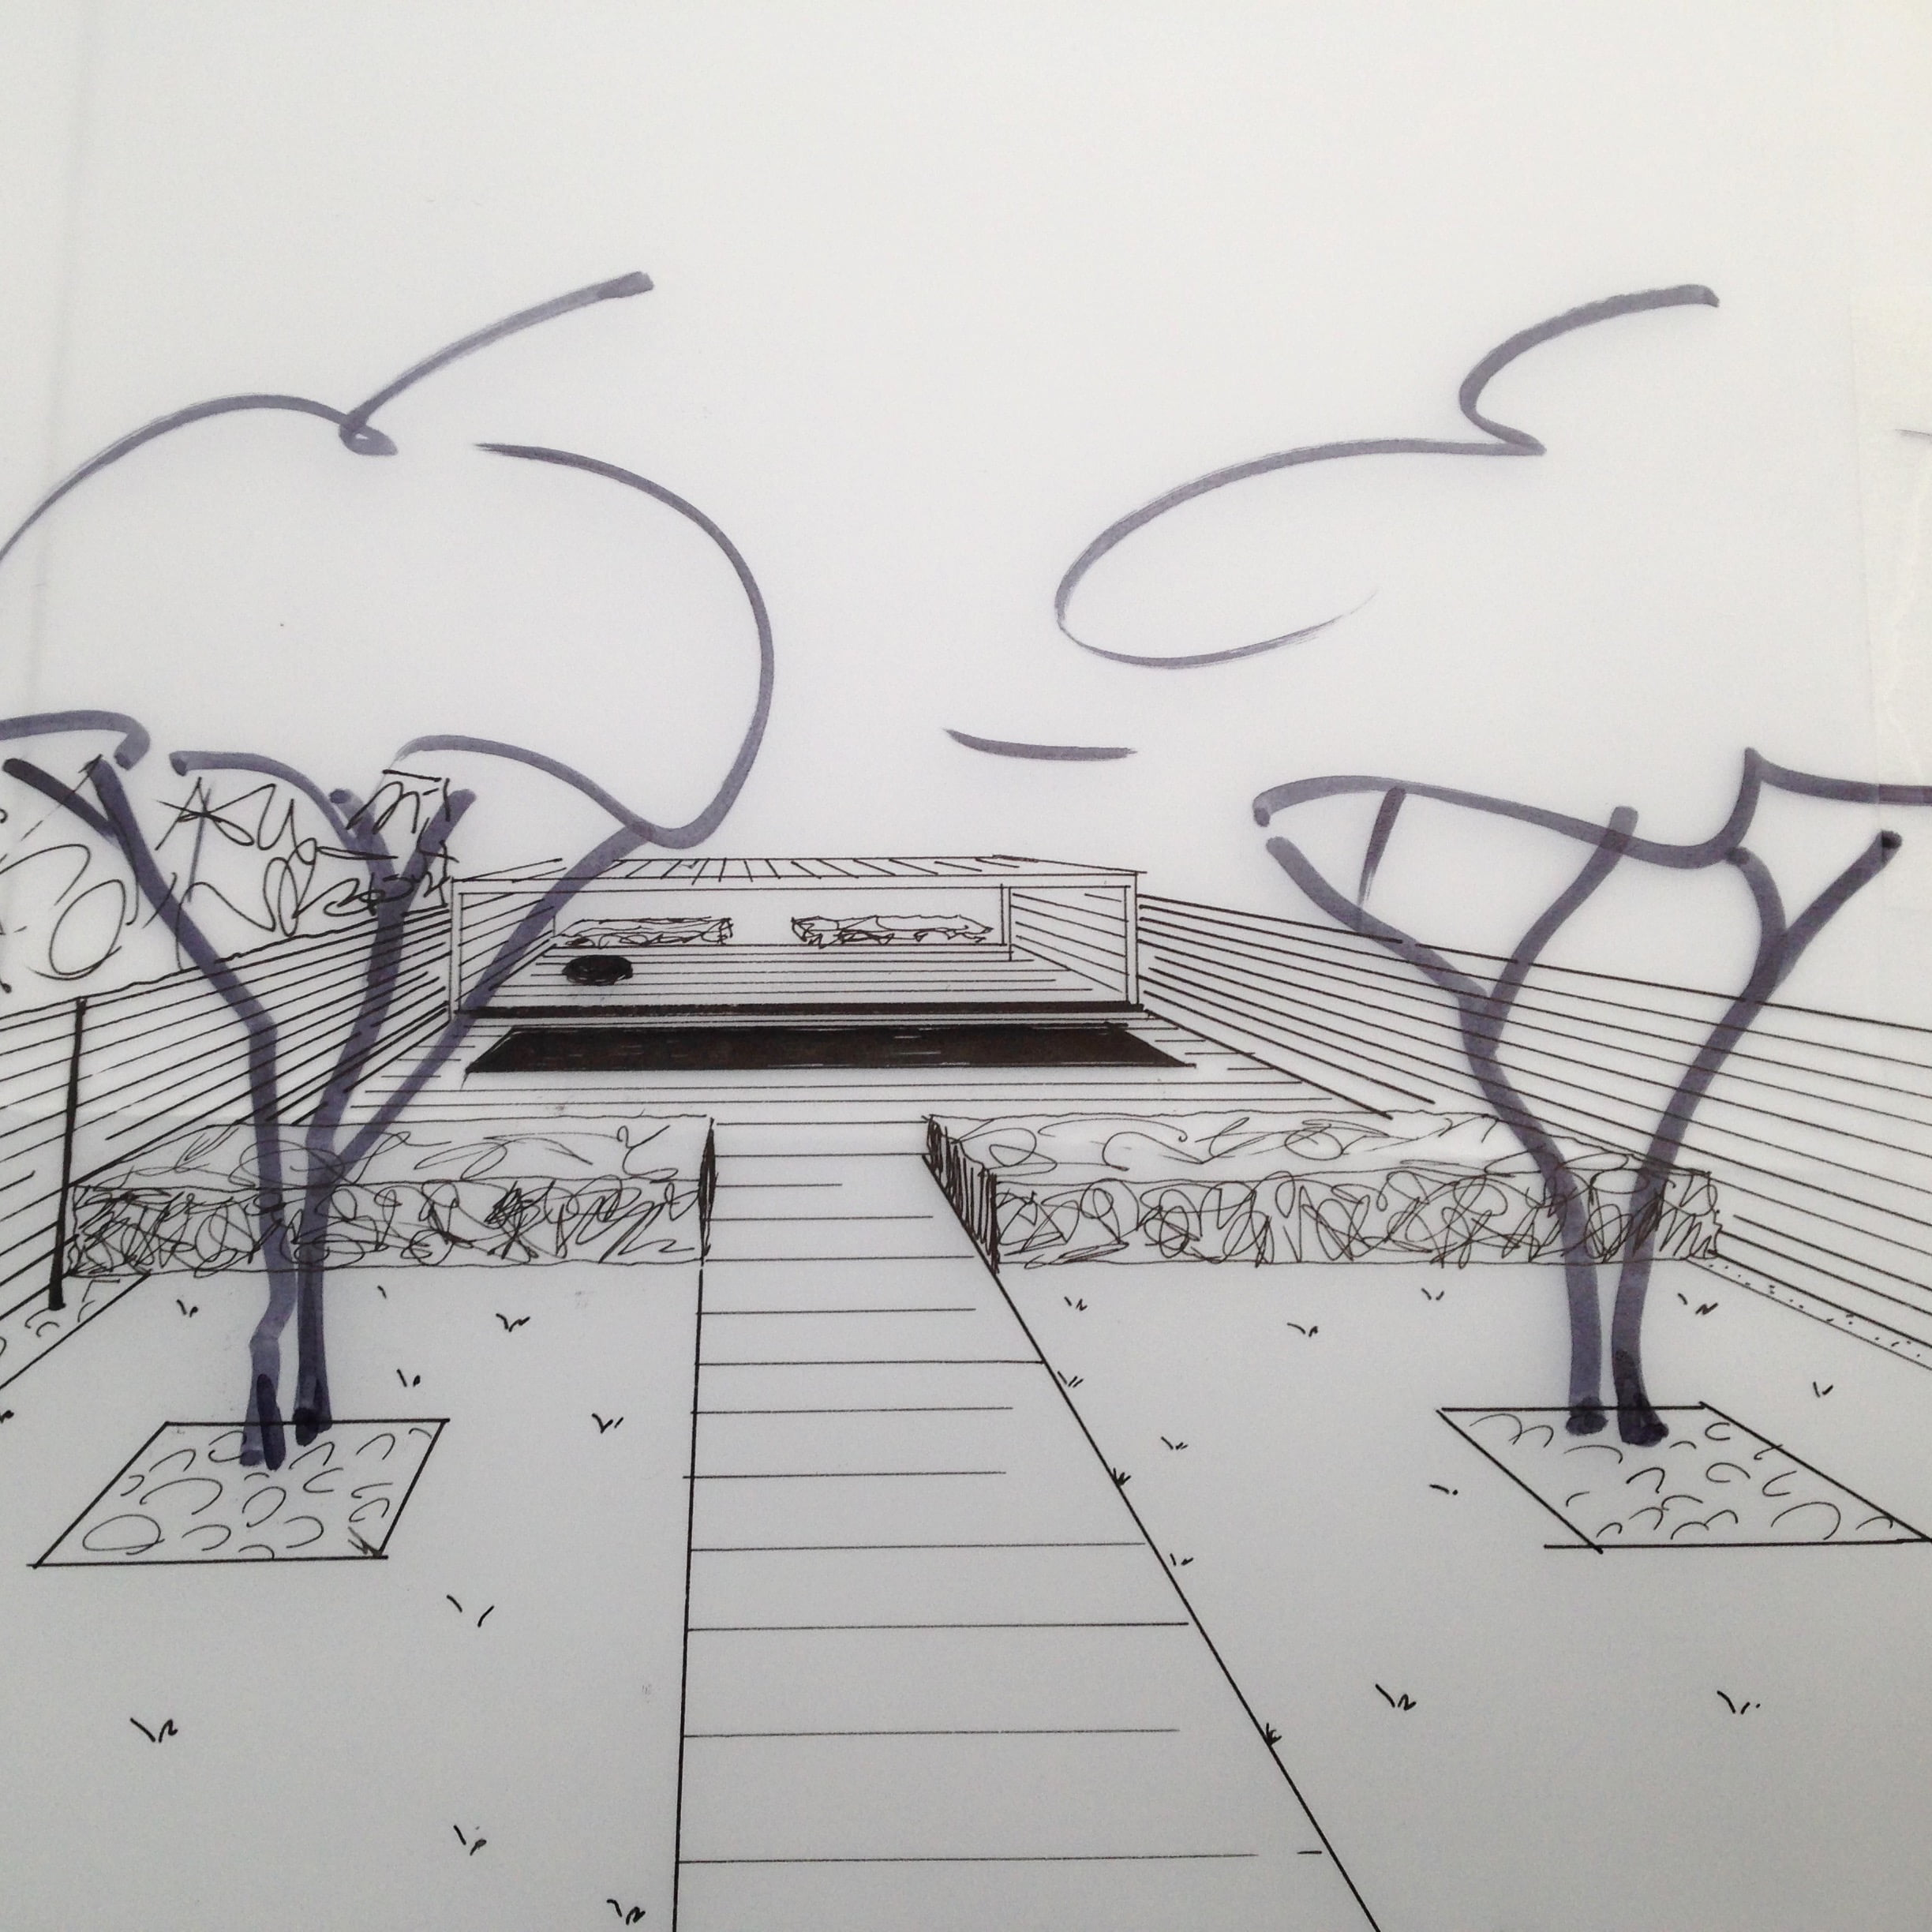 this is my original 3d style drawing of this contemporary garden with swimming pool & modern styling